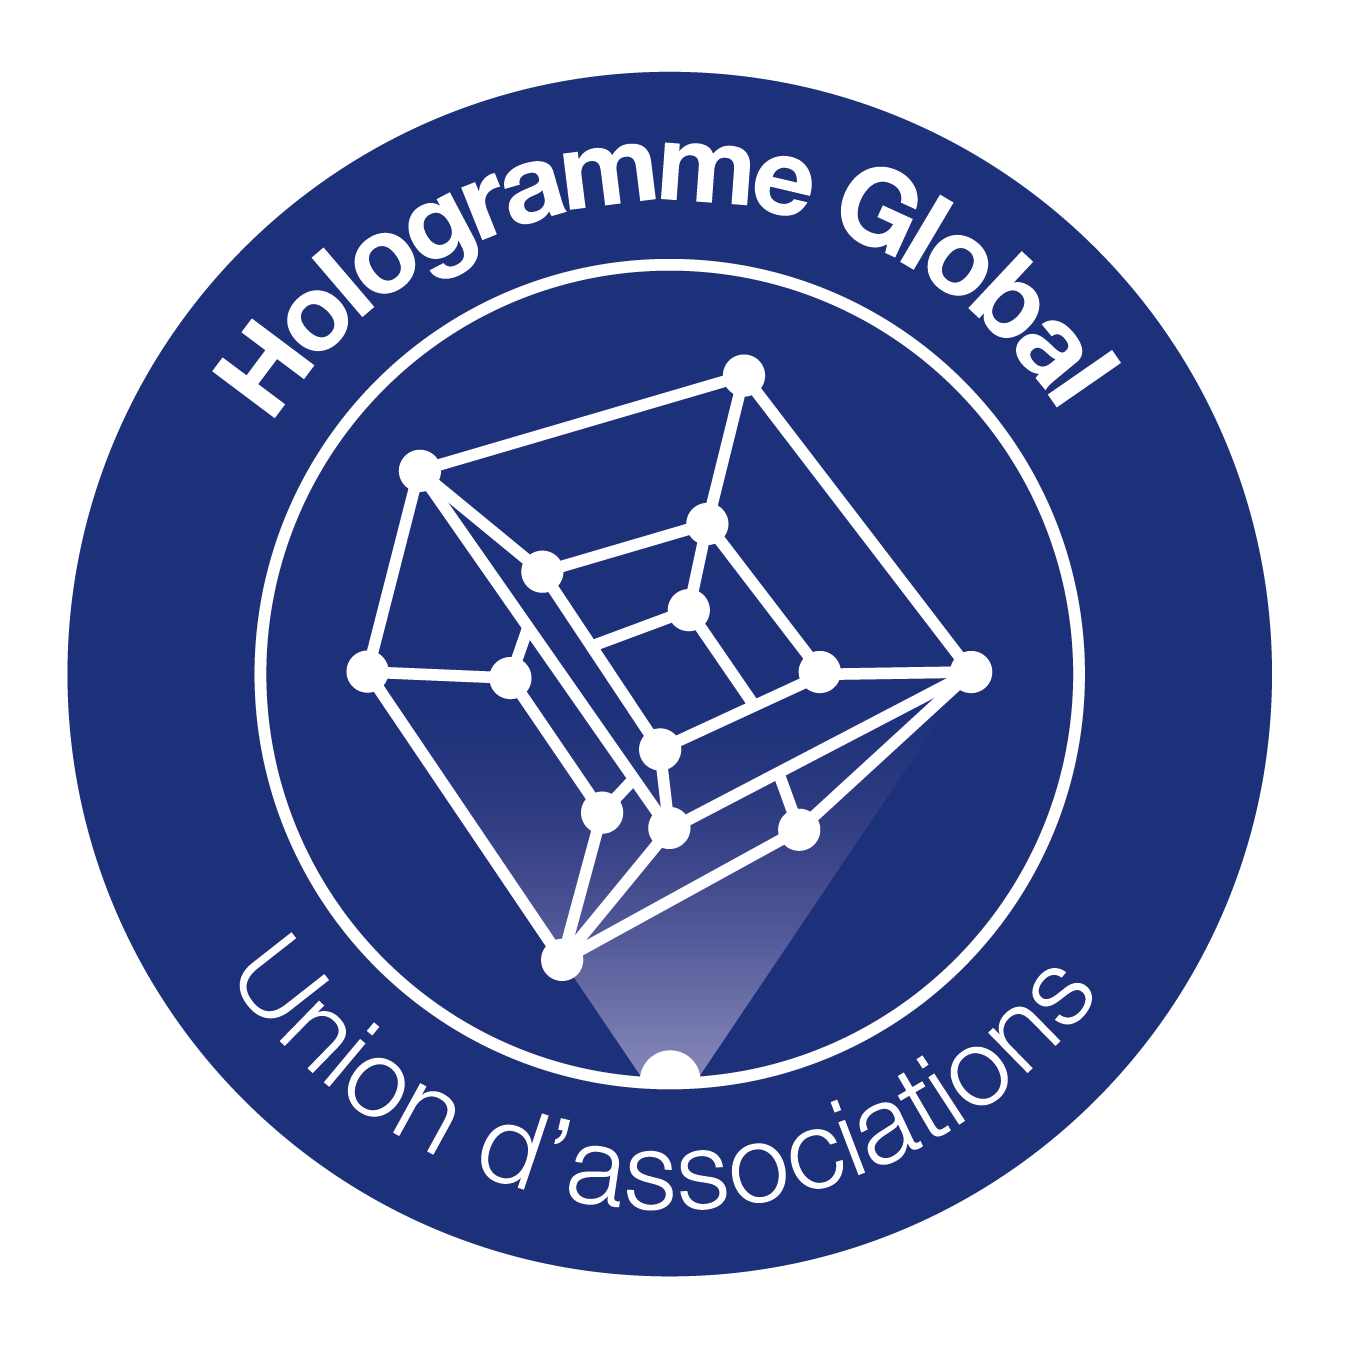 Association Hologramme Global